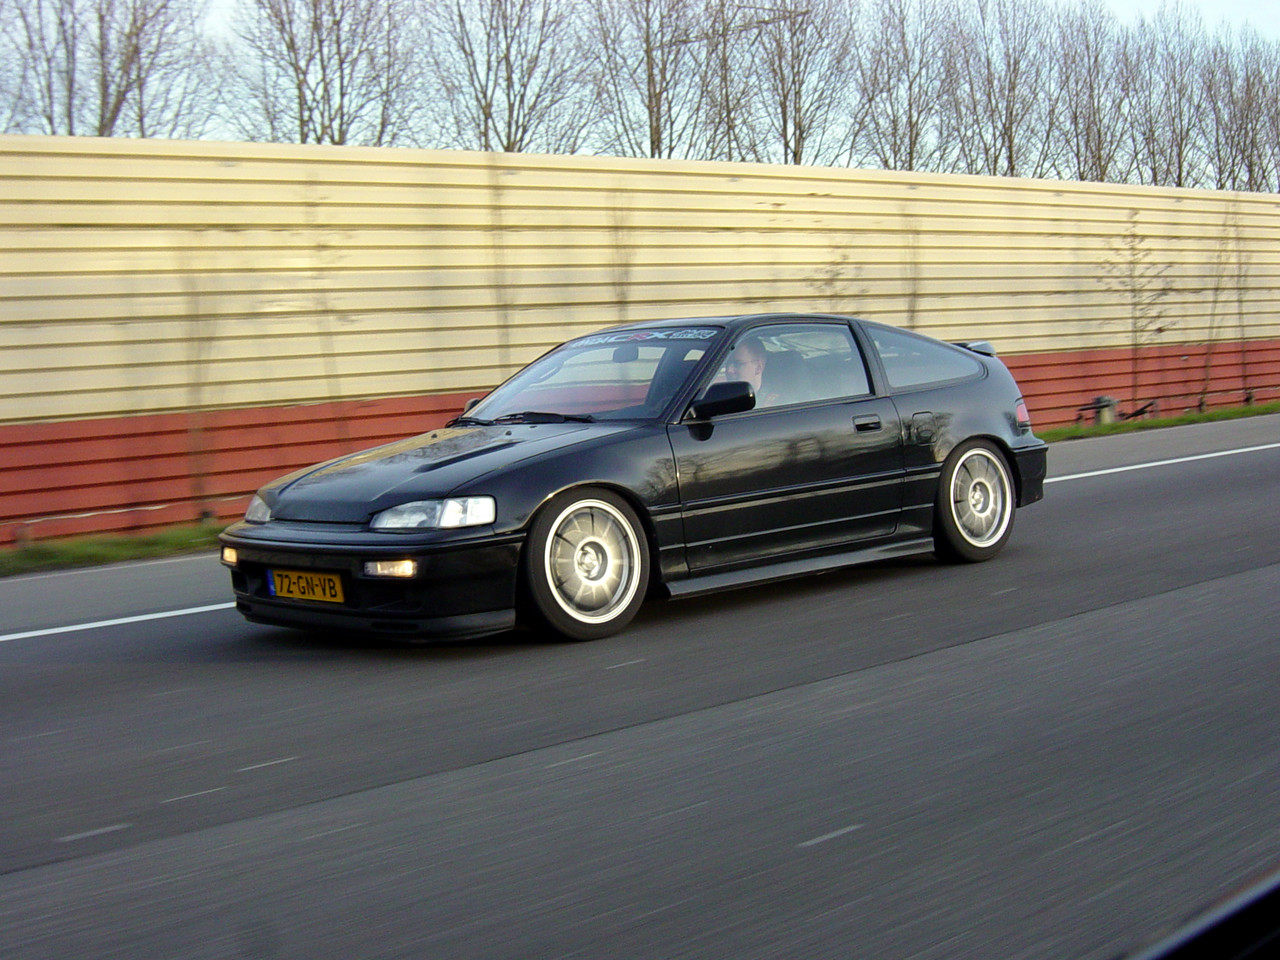 Renault Espace front lip and